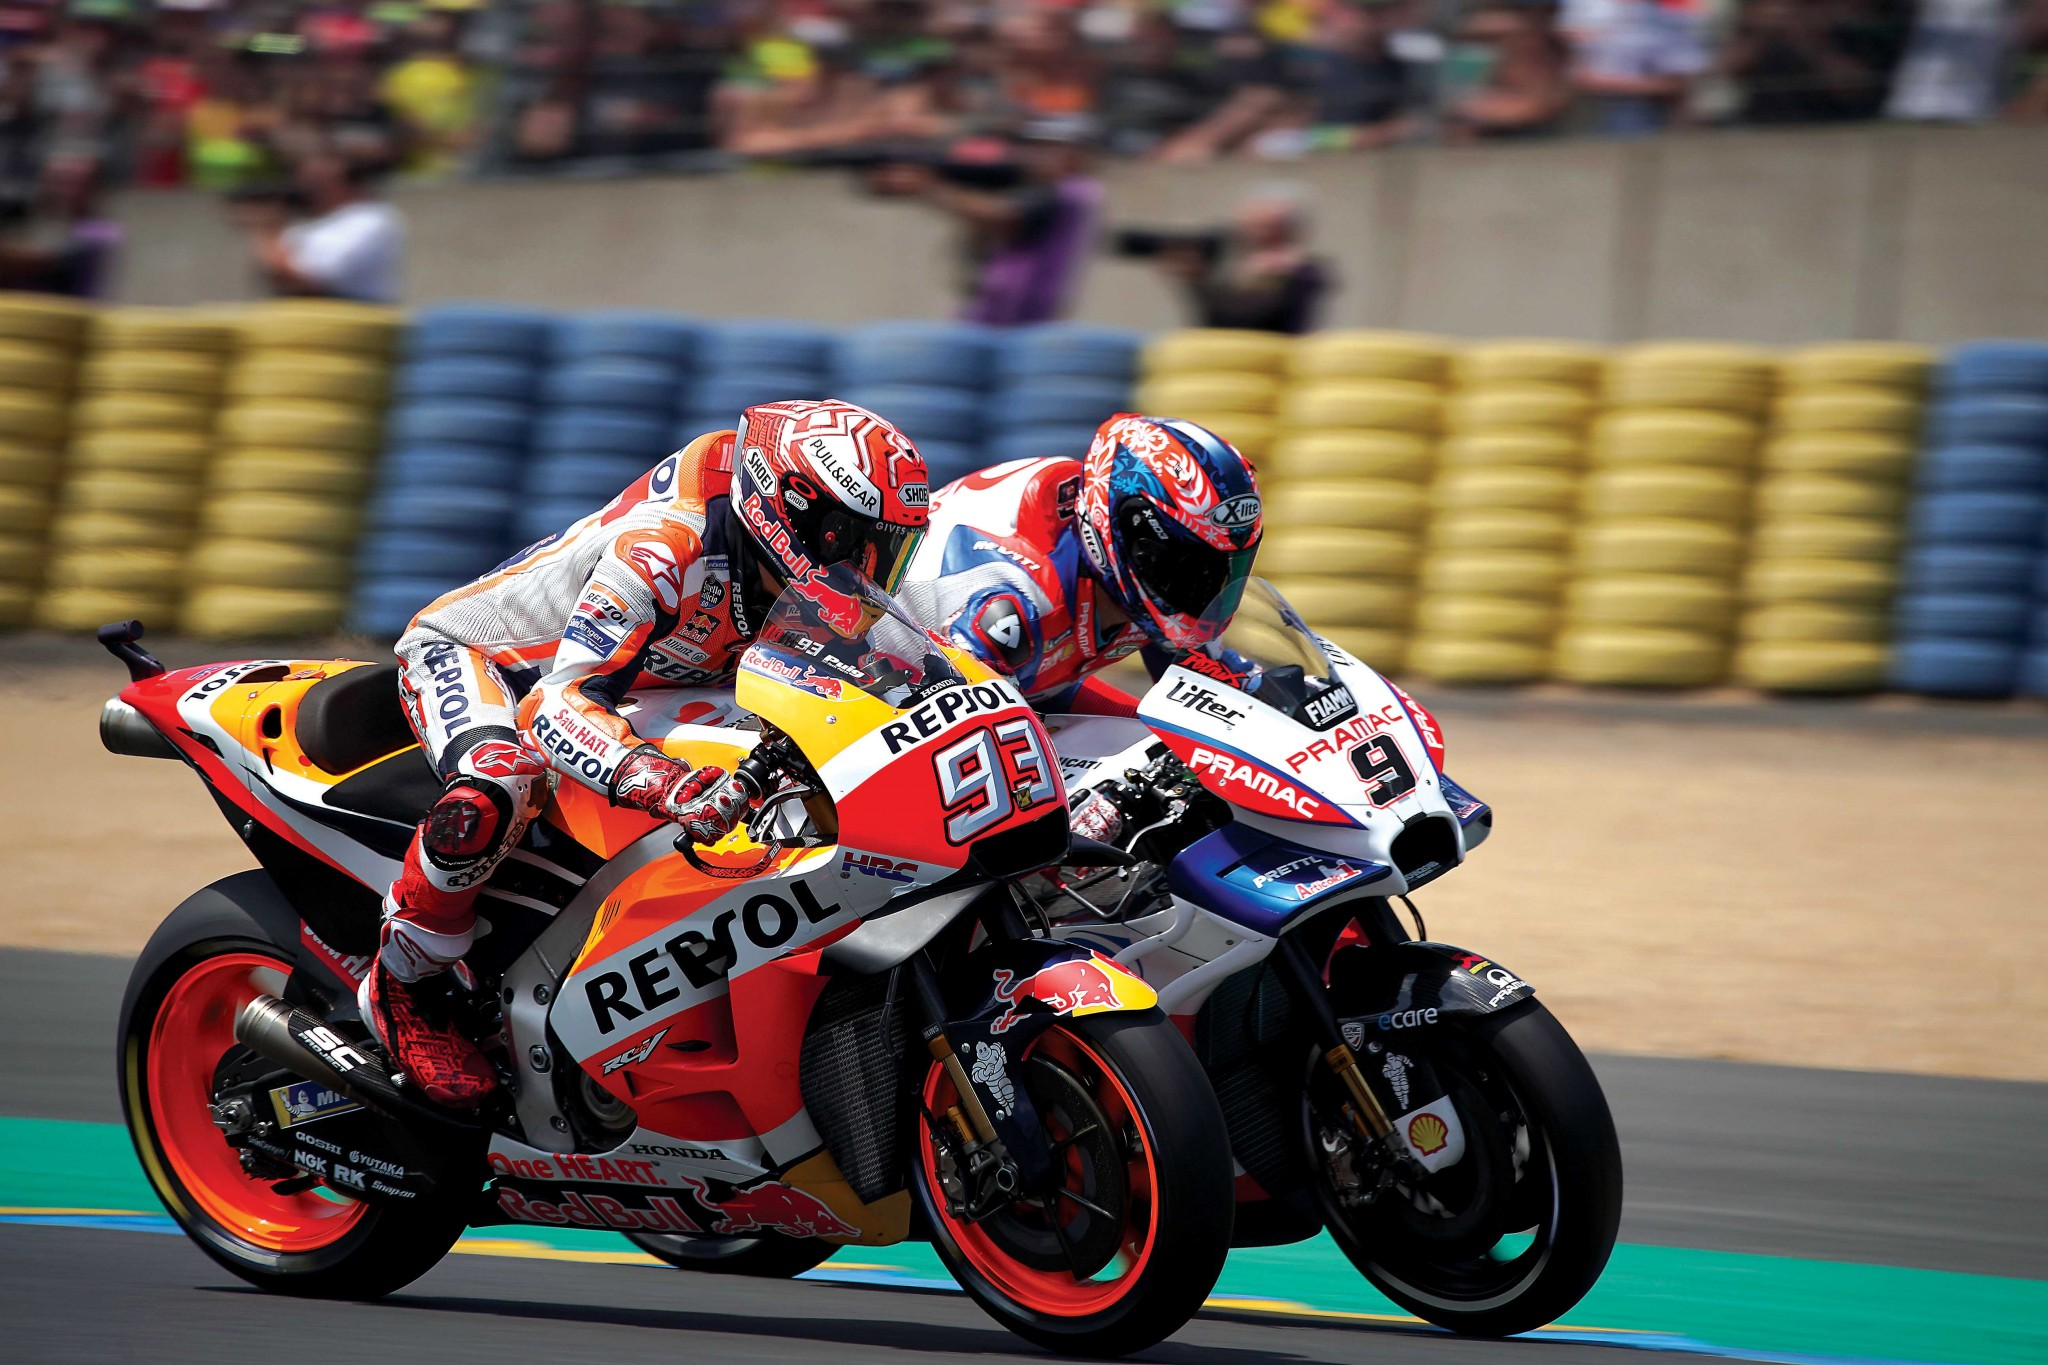 marc-marquez-and-danilo-petrucci-french-gp